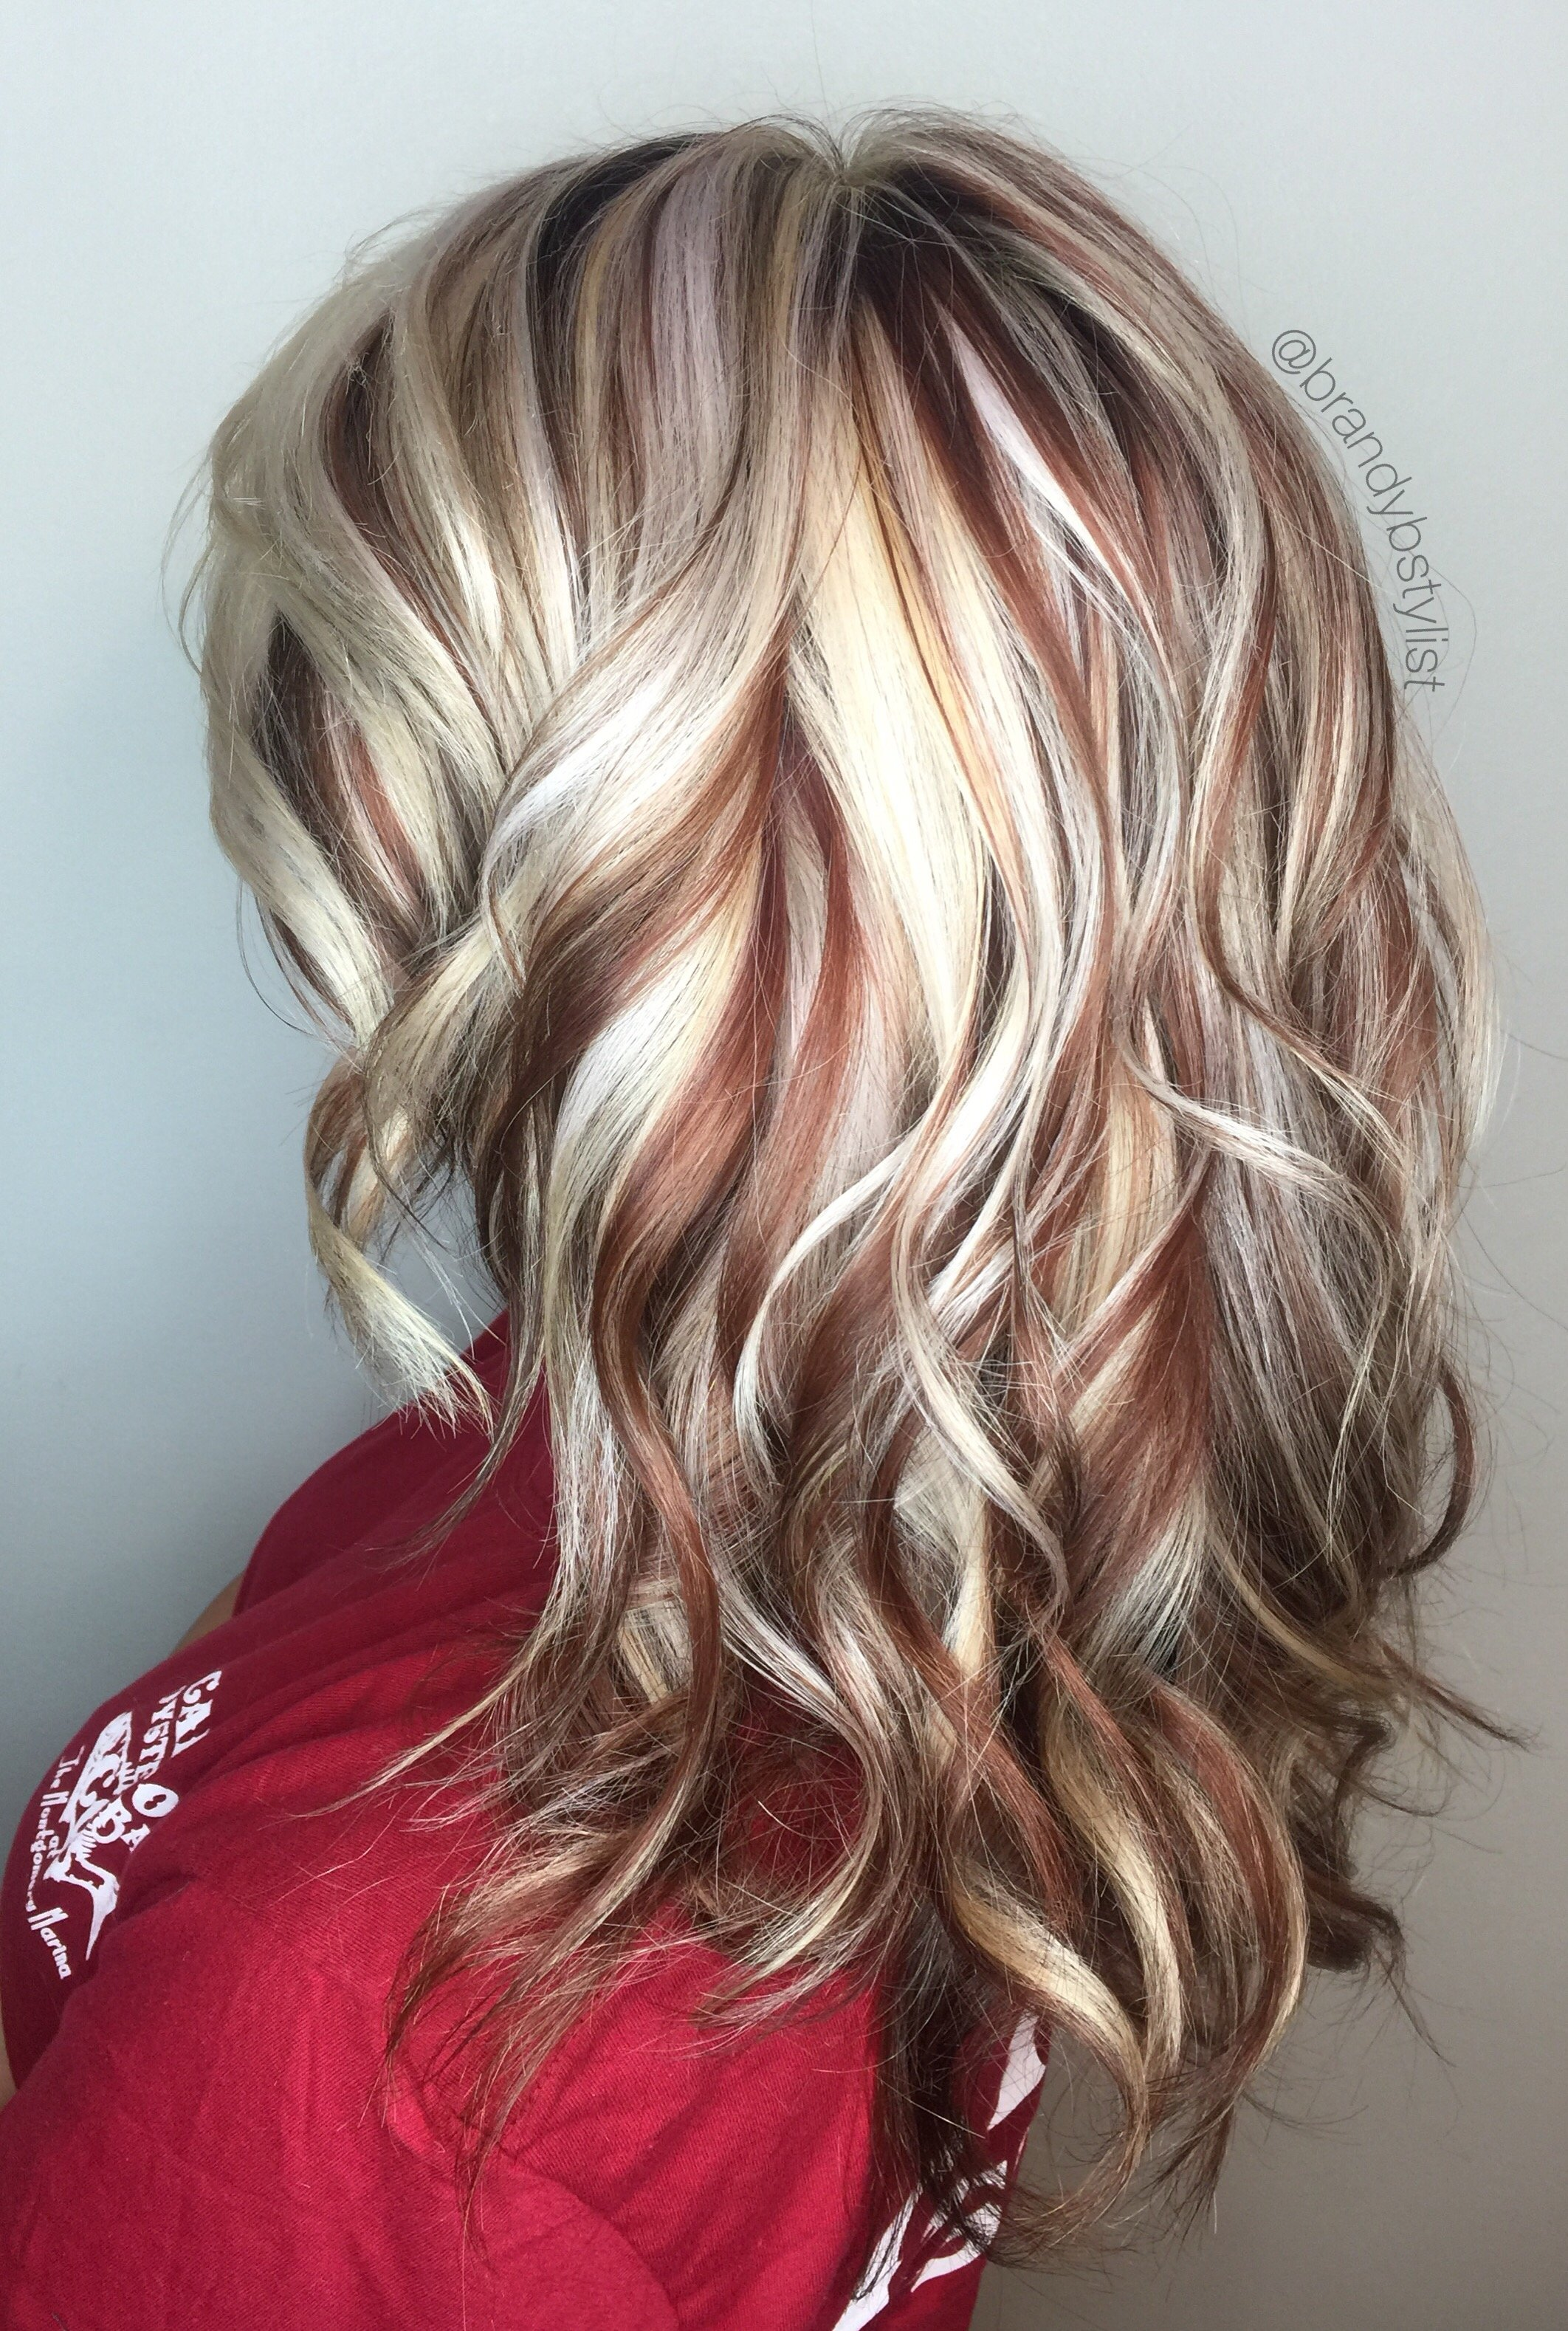 10 Stunning Hair Color With Highlights Ideas red copper highlights dark brown hair diy color and best with stock 2020